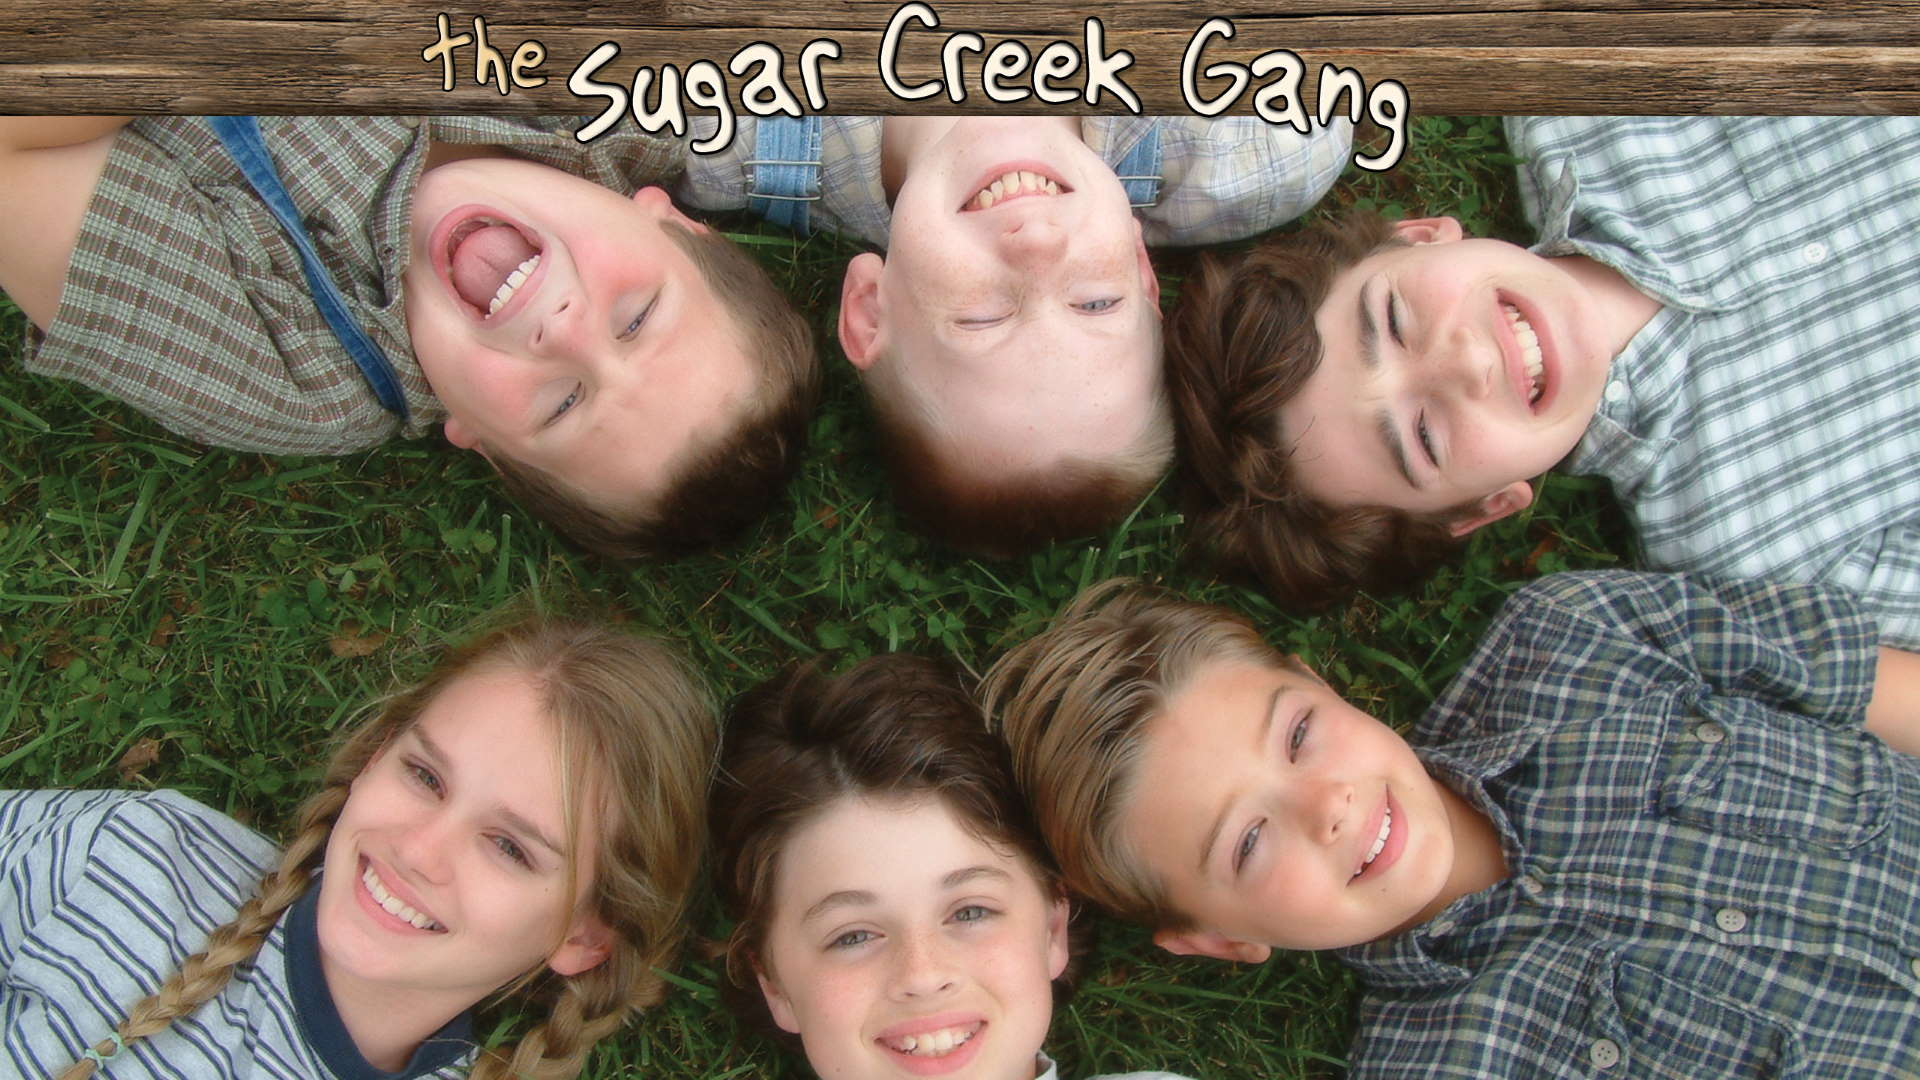 The Sugar Creek Gang Ep 3: Race Against Nightfall